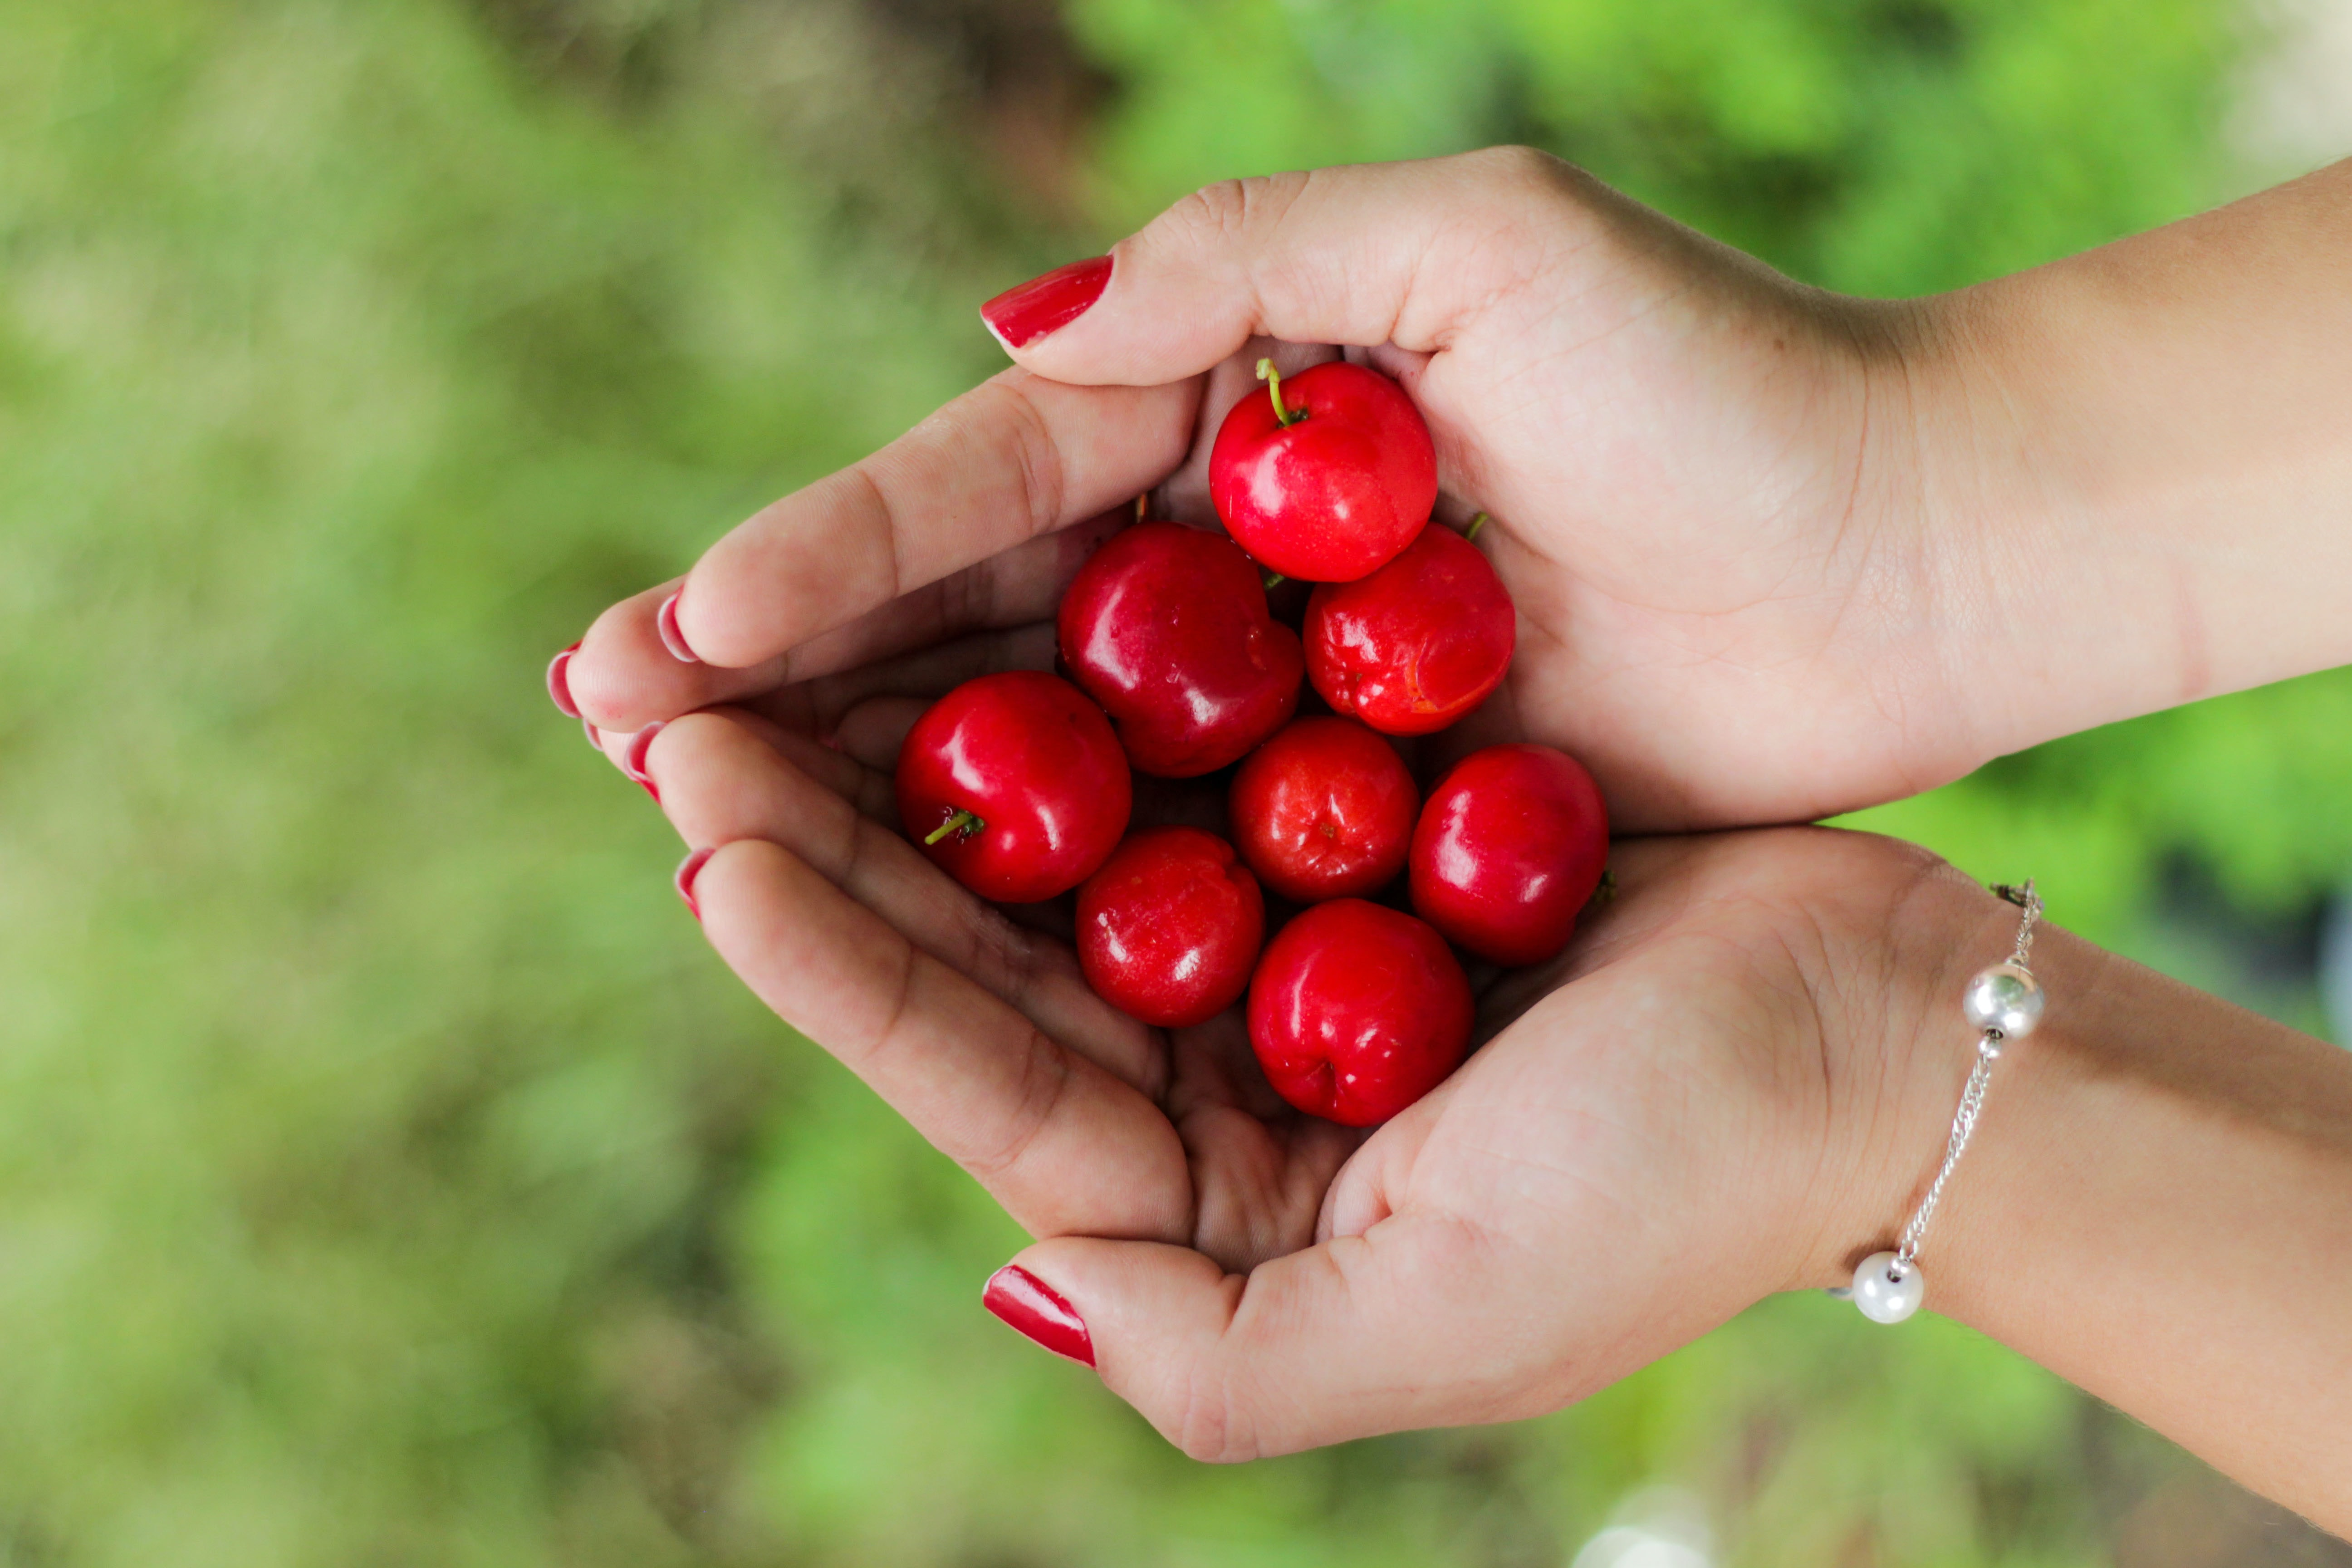 red berries on person's hands